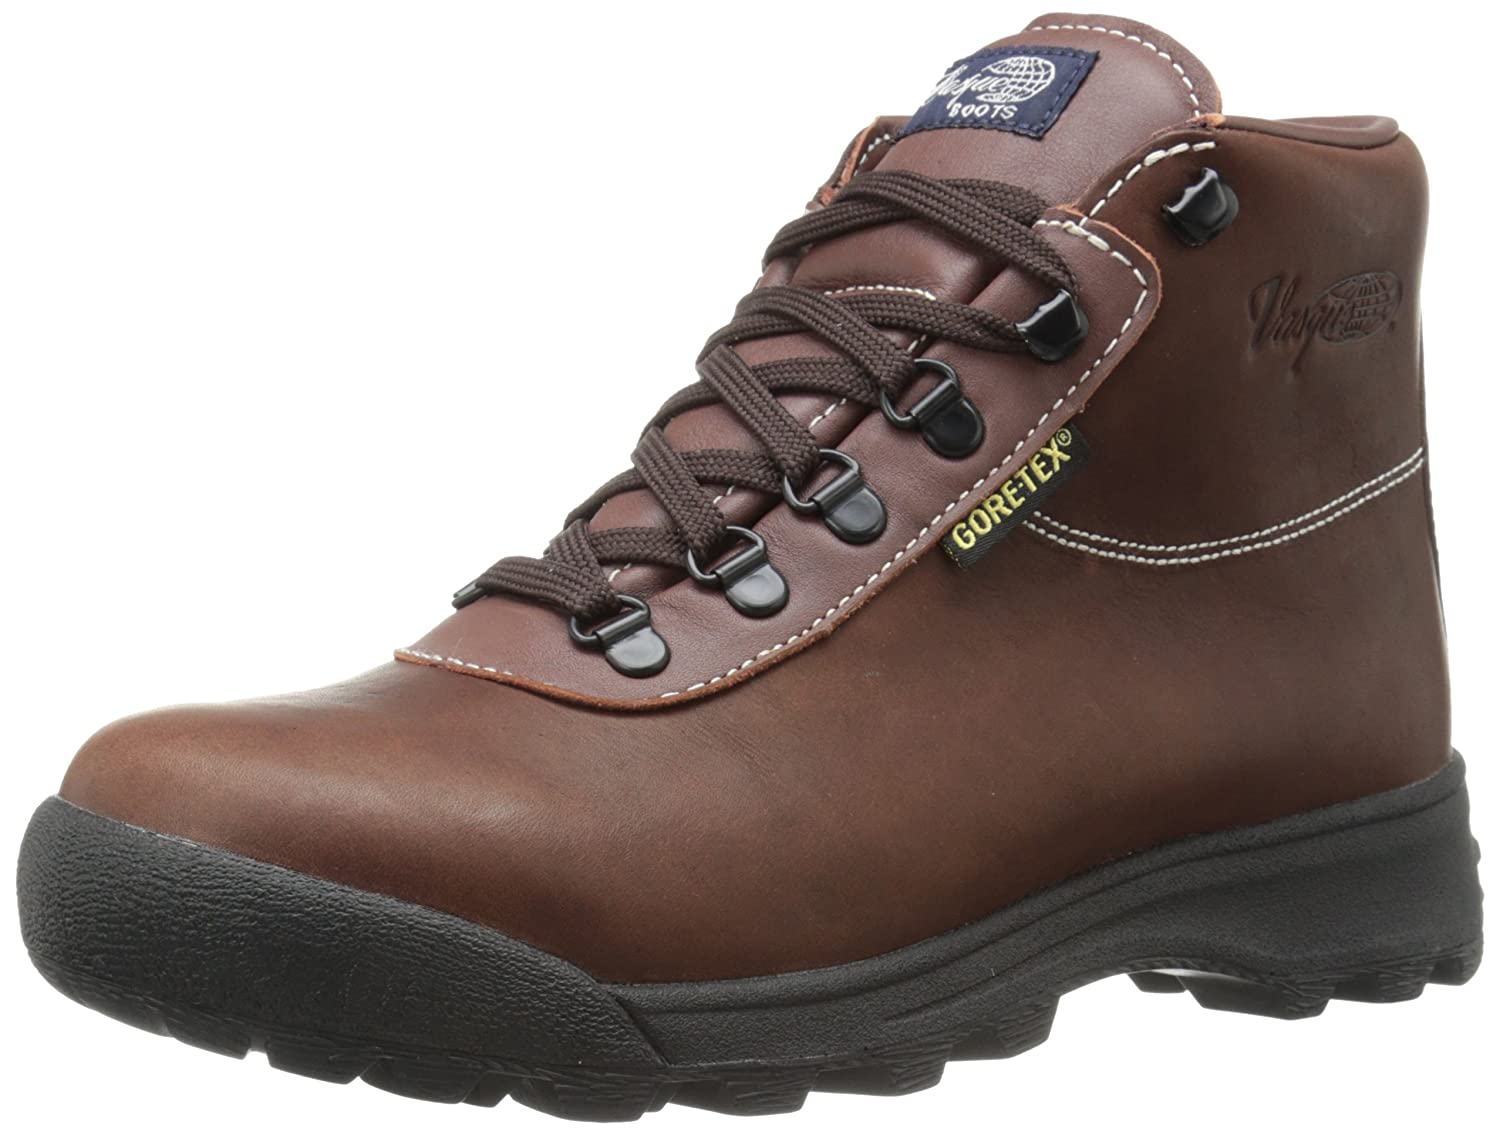 Vasque Men's Sundowner Gore-Tex Backpacking Boot Sundowner GTX-M